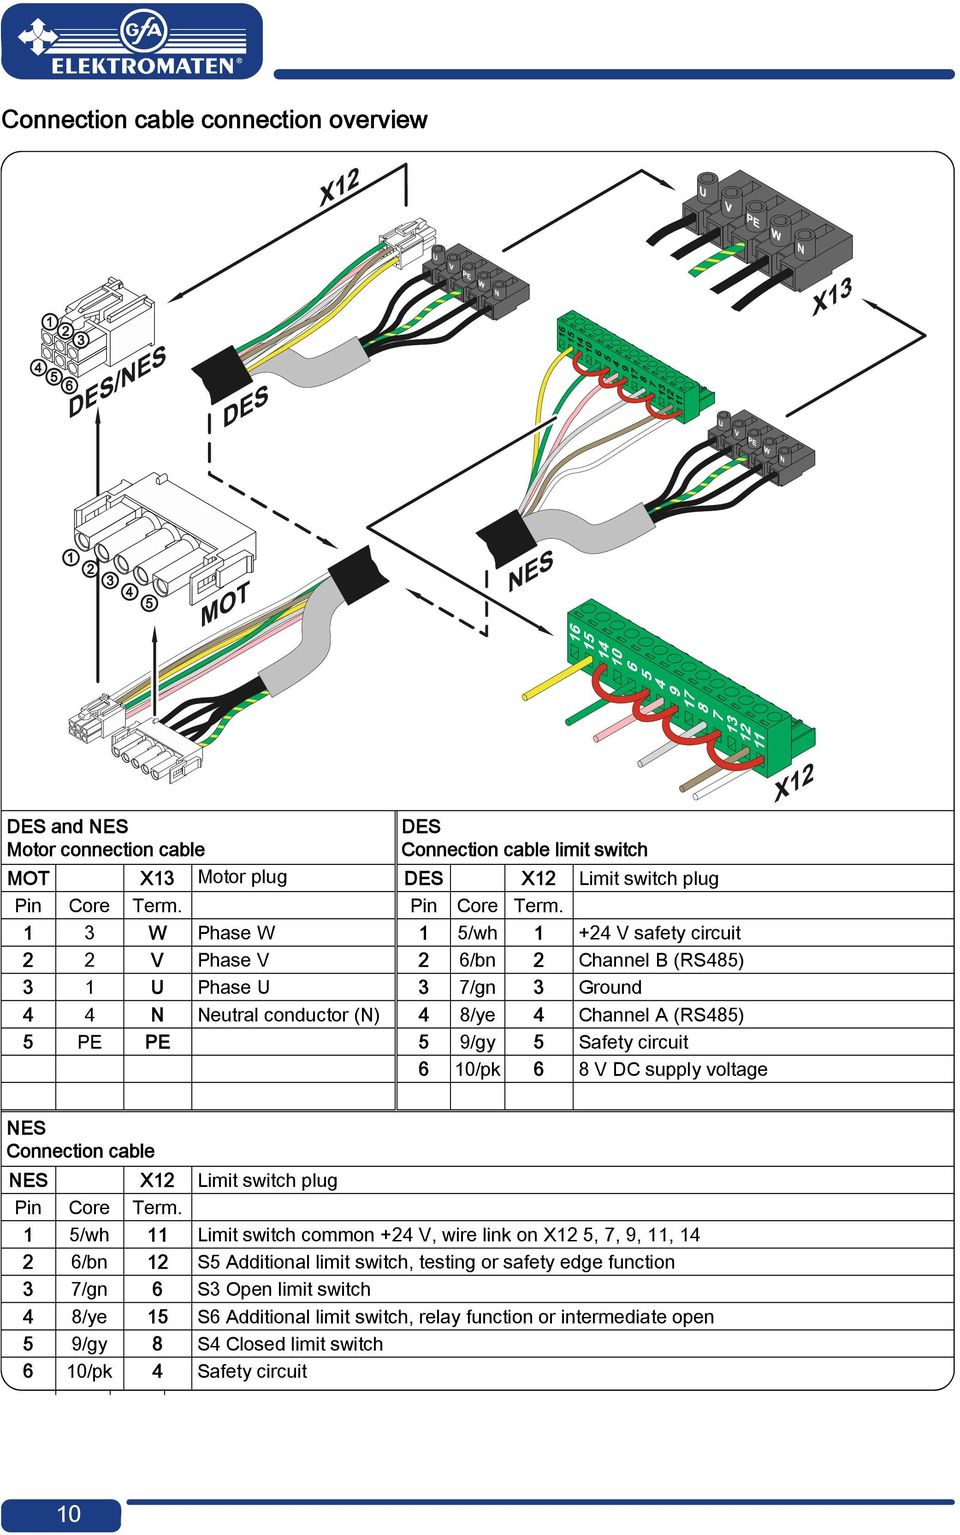 Installation Instructions Pdf X12 Wiring Diagram 1 3 W Phase 5 Wh 24 V Safety Circuit 2